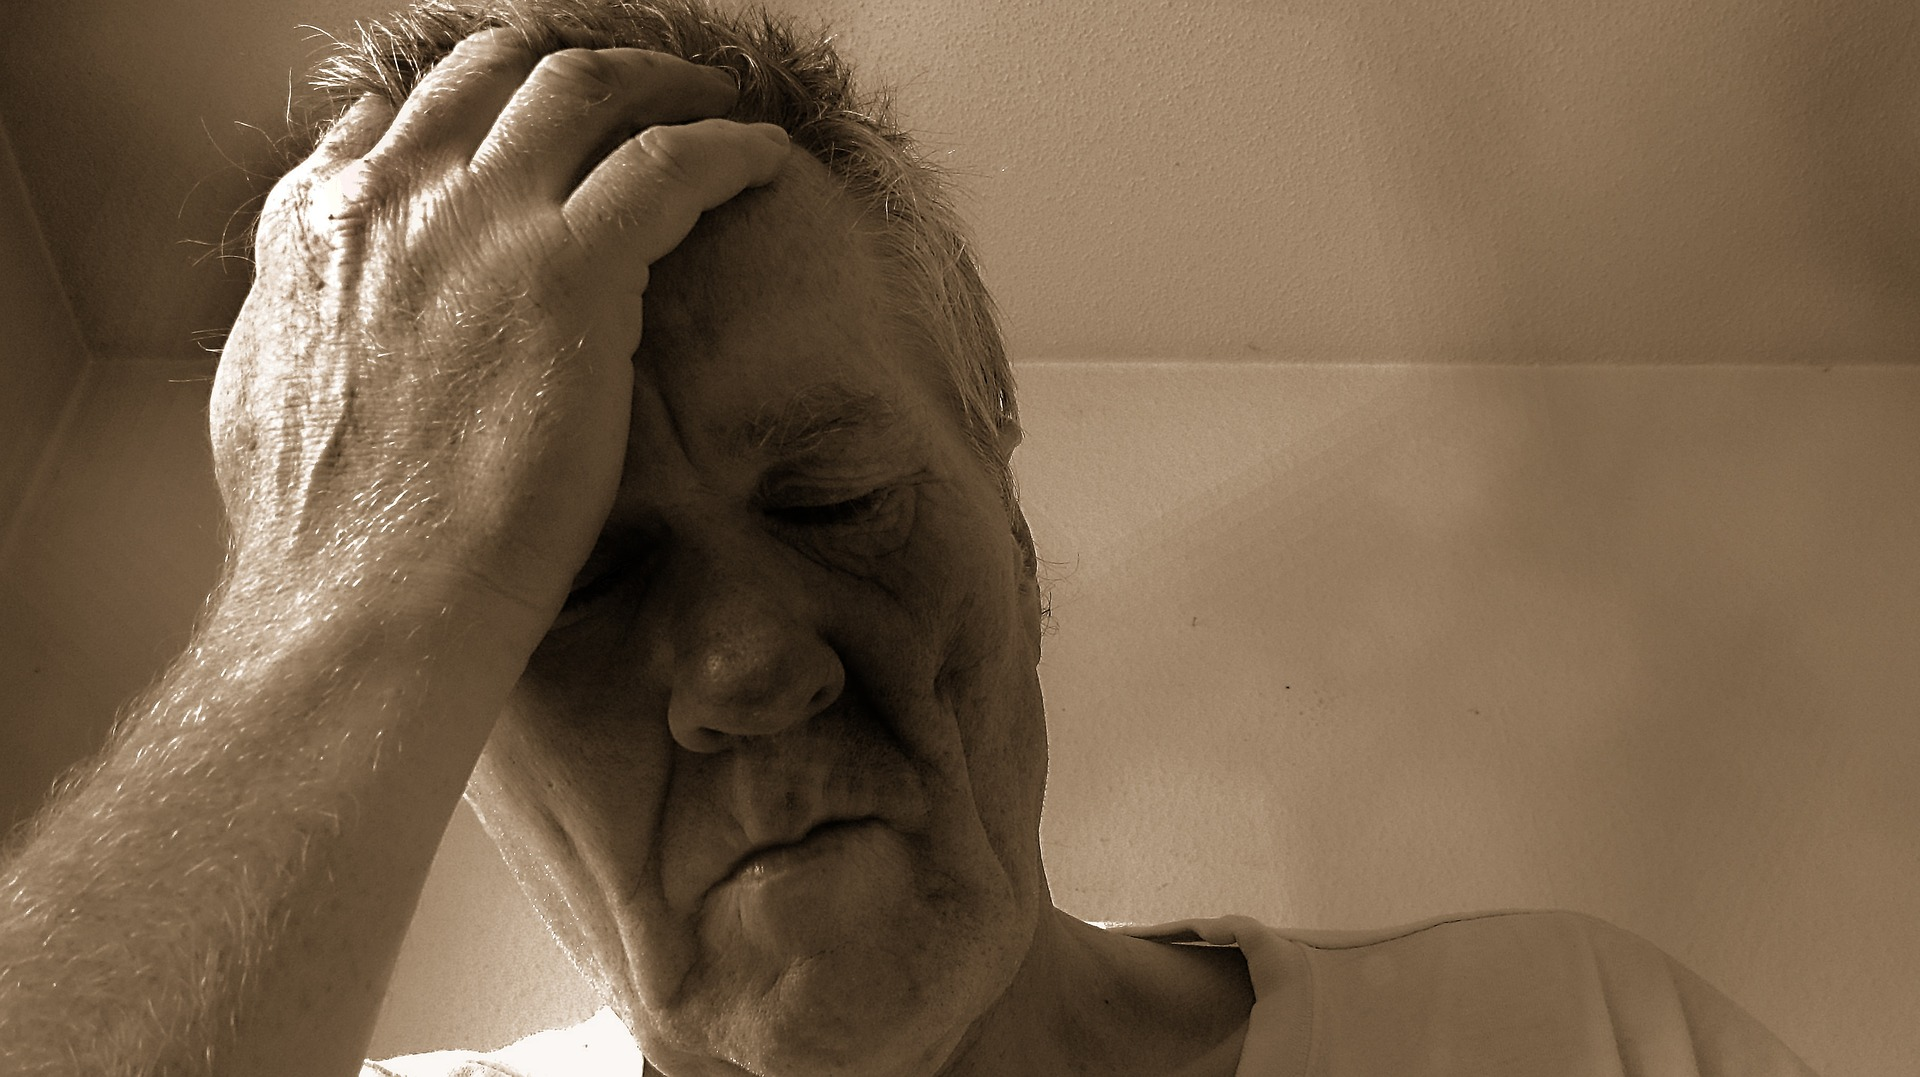 Two Common Causes of Fatigue and Depression